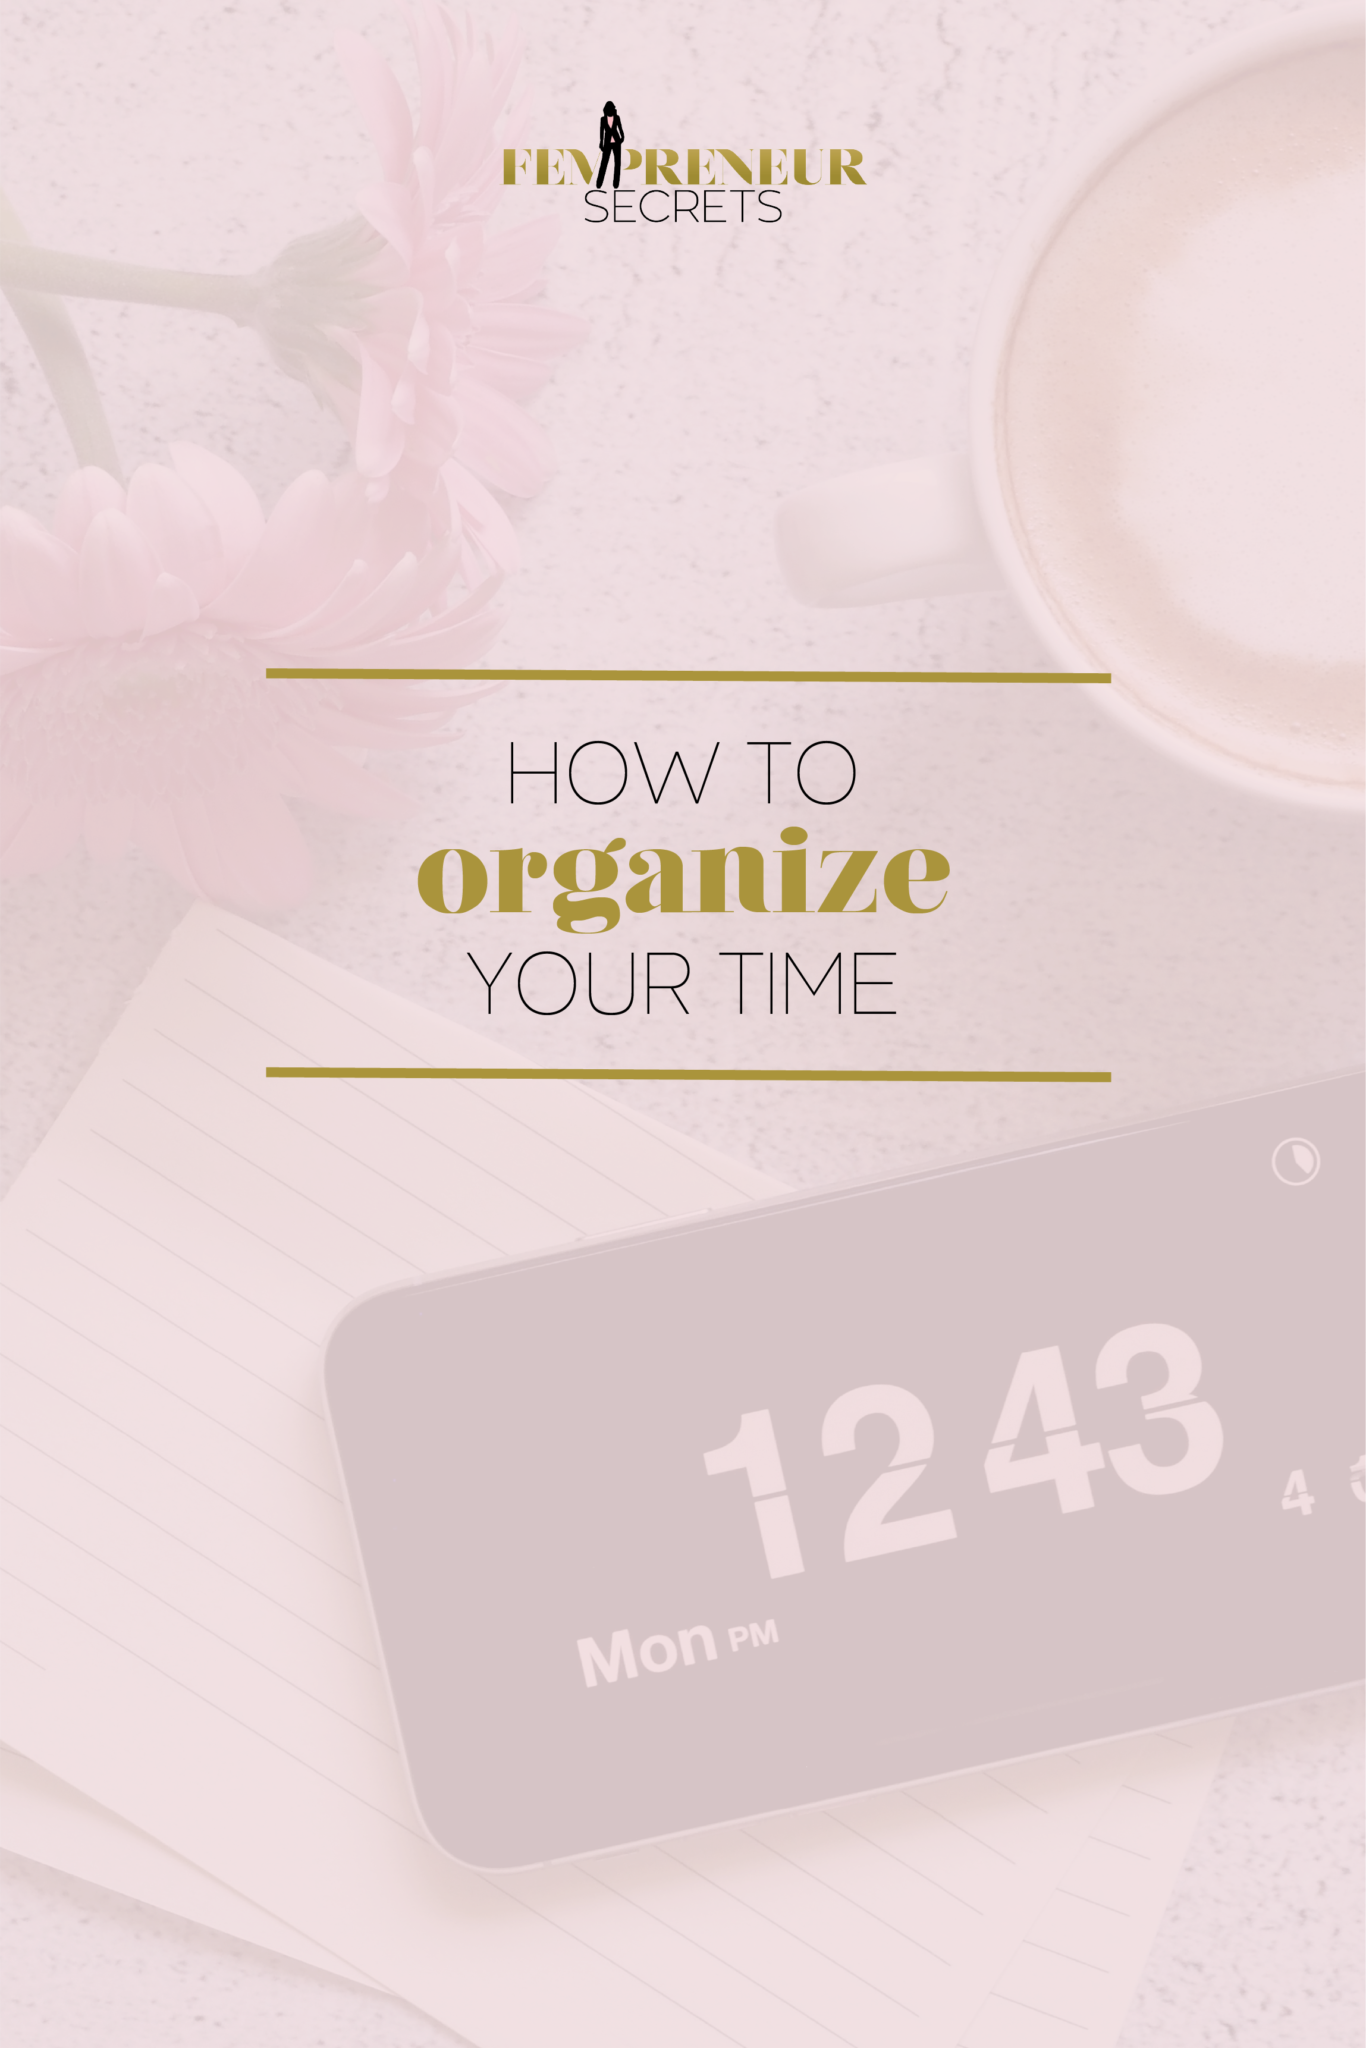 013-5-Secrets-to-Organize-Time-for-Your-Business_Pinterest-2.png